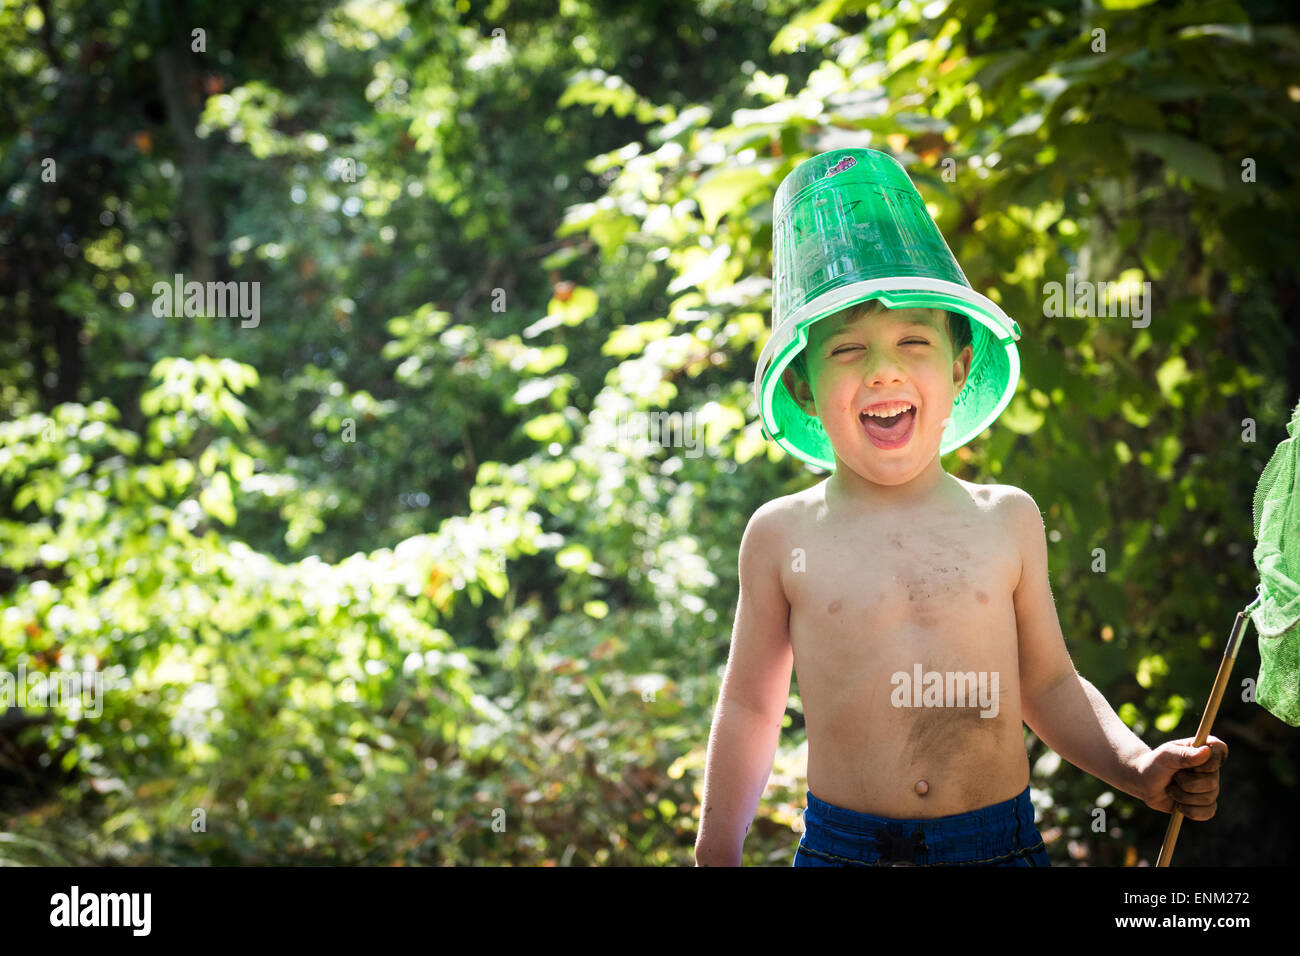 Toddler boy jokes with a bucket on his head and butterfly net in hand while next to creek in Bidwell Park, Chico, - Stock Image